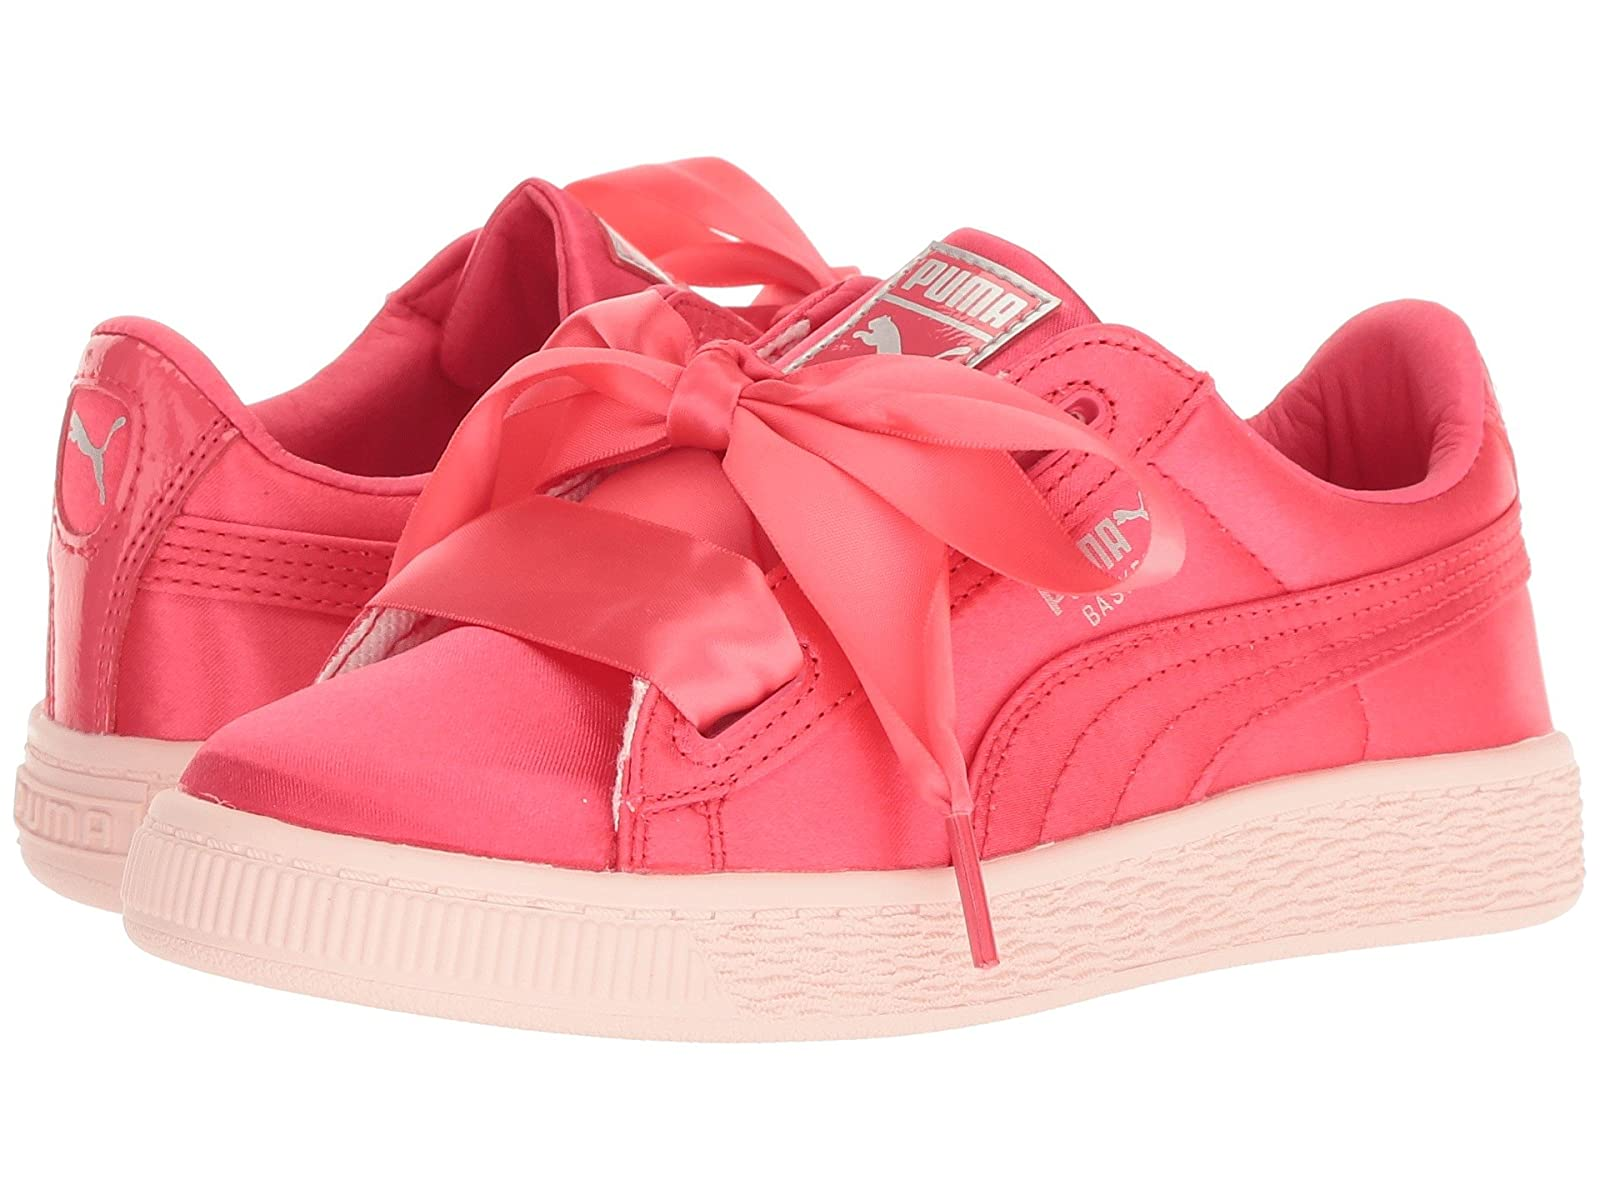 Puma Kids Basket Heart Tween PS (Little Kid/Big Kid)Atmospheric grades have affordable shoes